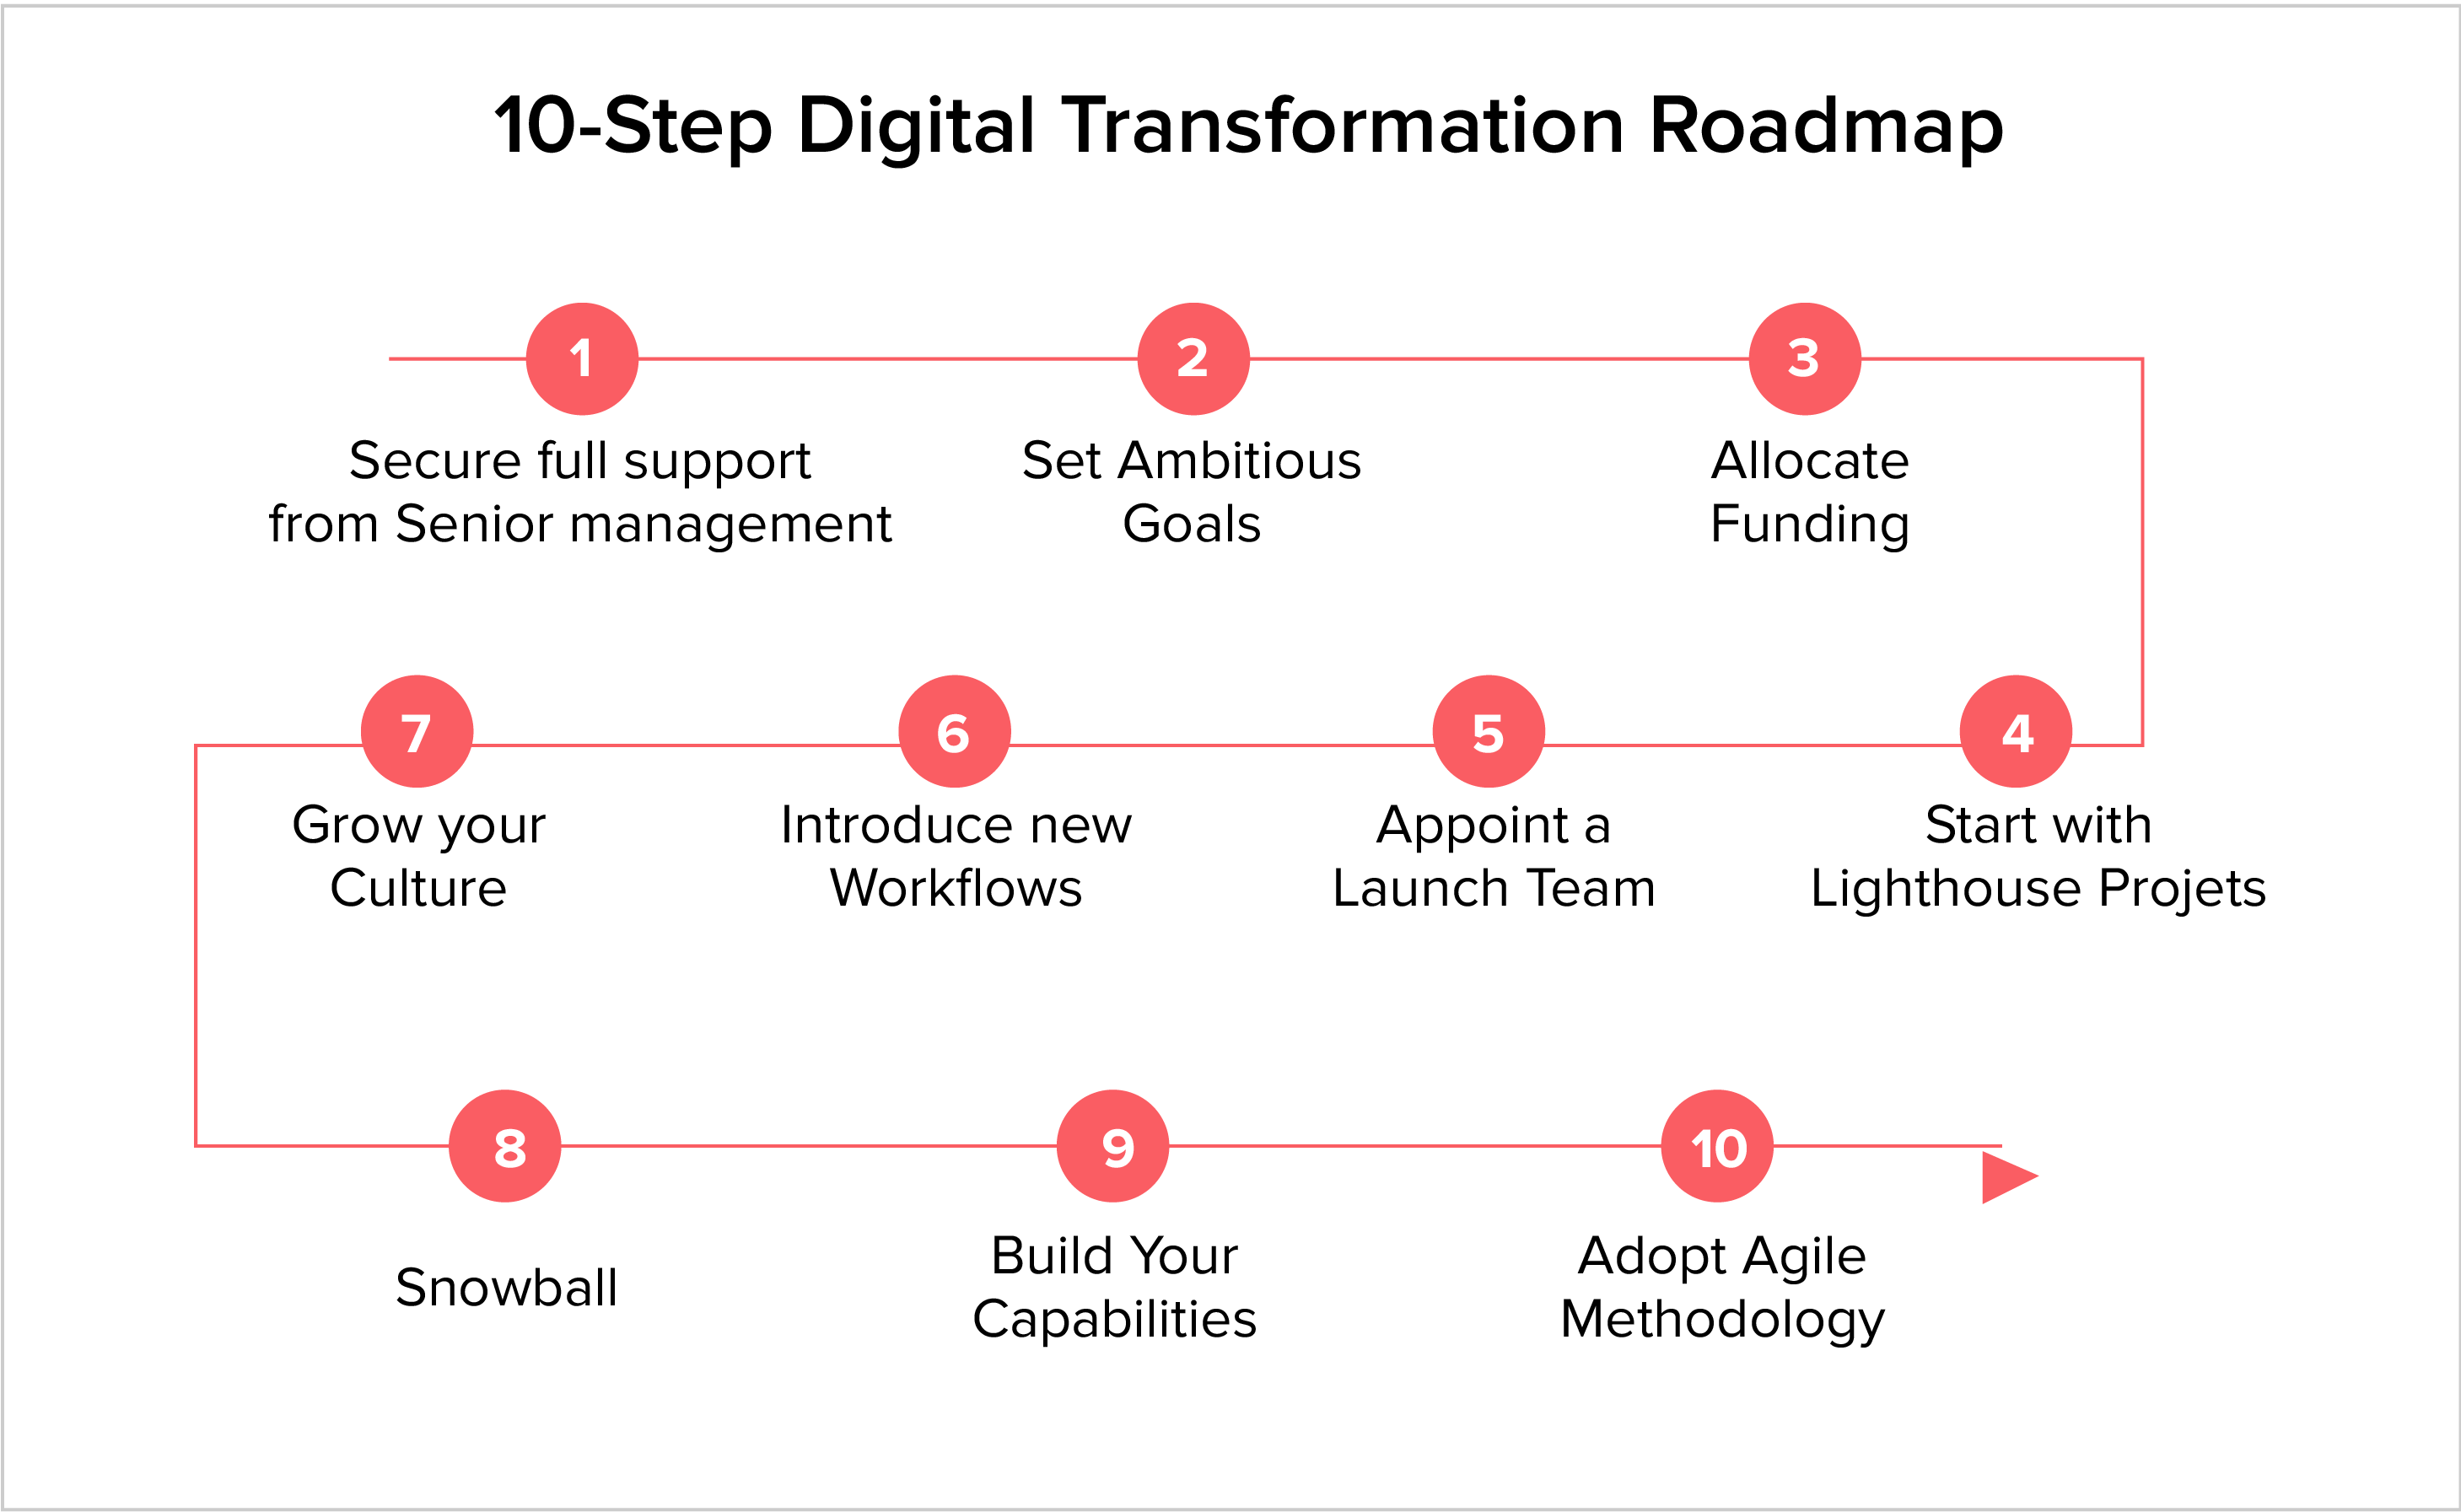 How to approach Digital Transformation?